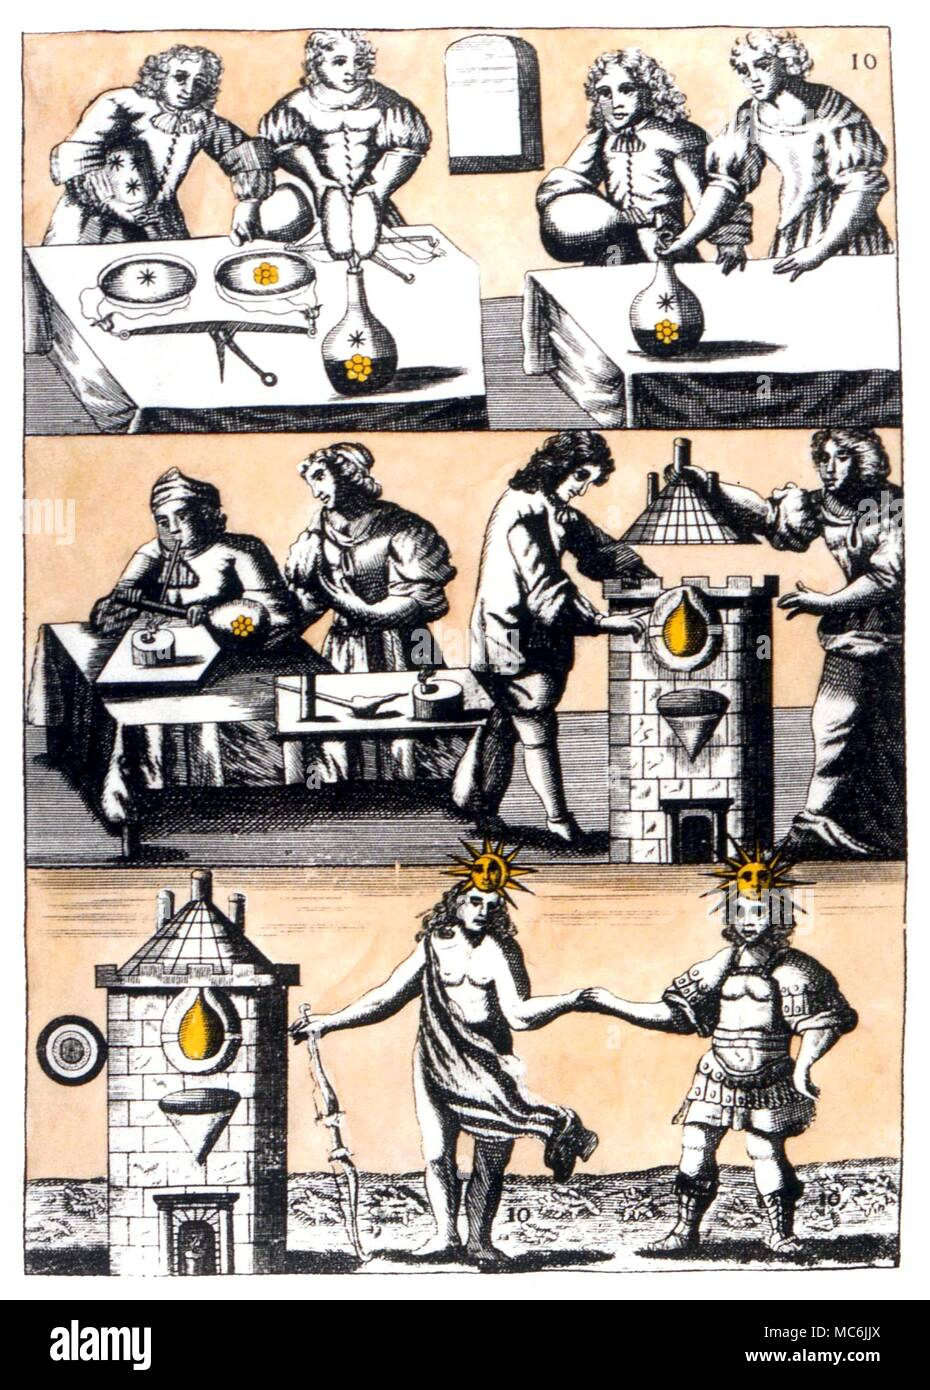 ALCHEMY - MUTUS LIBER.  Plate 10 from 'Mutus Liber', the Wordless Book, 1677 (La Rochelle), probably designed by Jacob Saulat.  Plate 10 - Relating the correct proportions of Flower and Salines Stock Photo